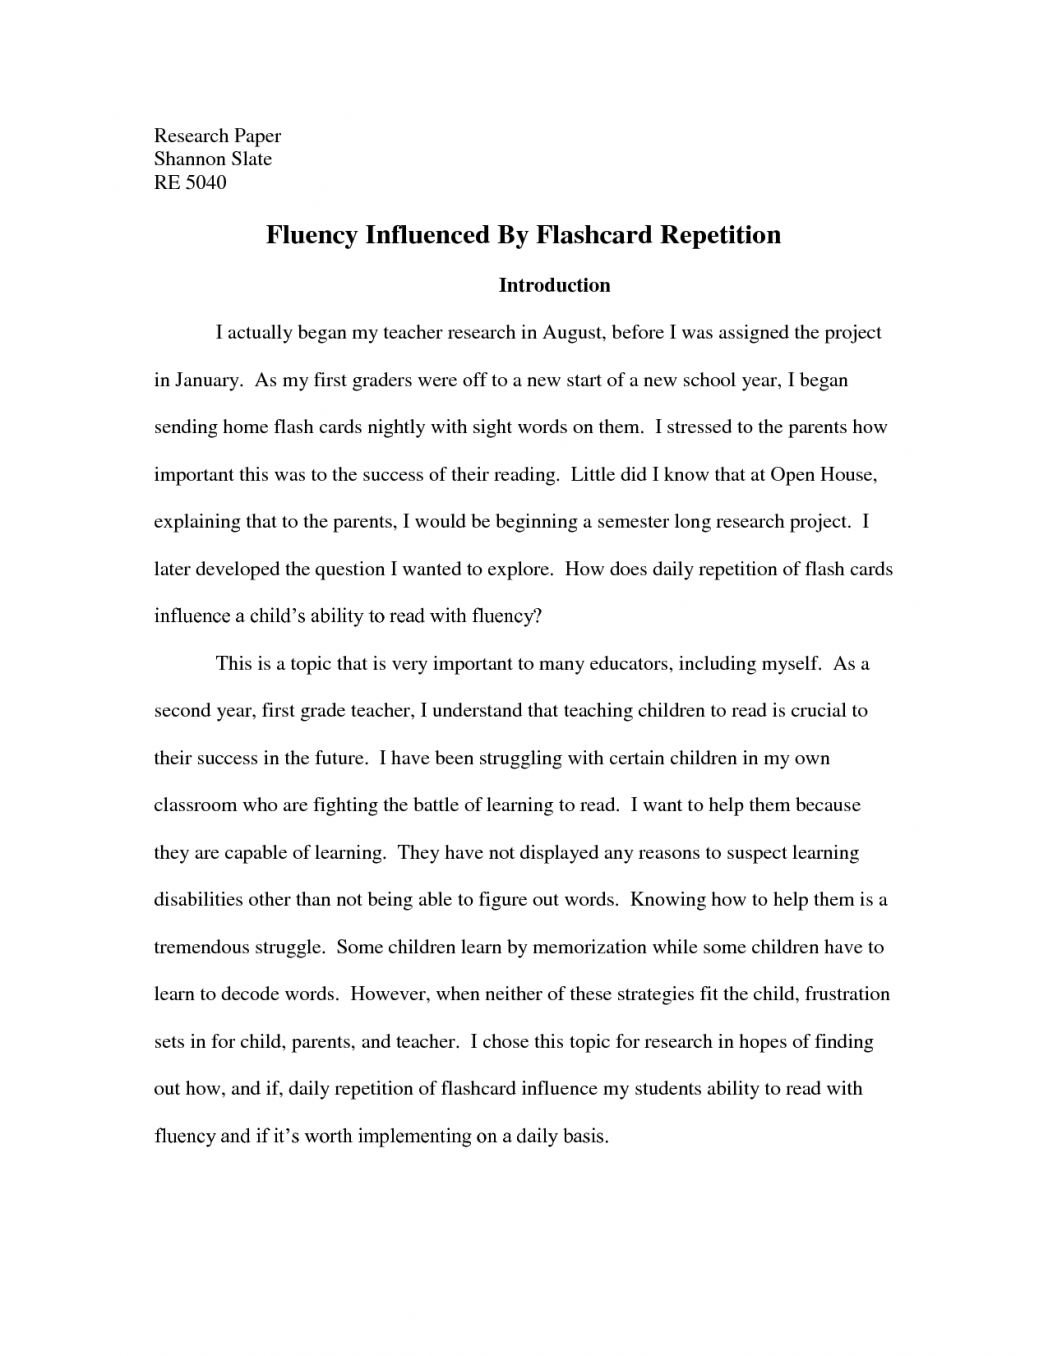 009 Words To Start Off Essay Begin Paragraph In An Argumentative Conclusion Persuasive End The First Body Sentence 1048x1356 Example Excellent How With A Question Write Narrative About Your Life Out Yourself Full